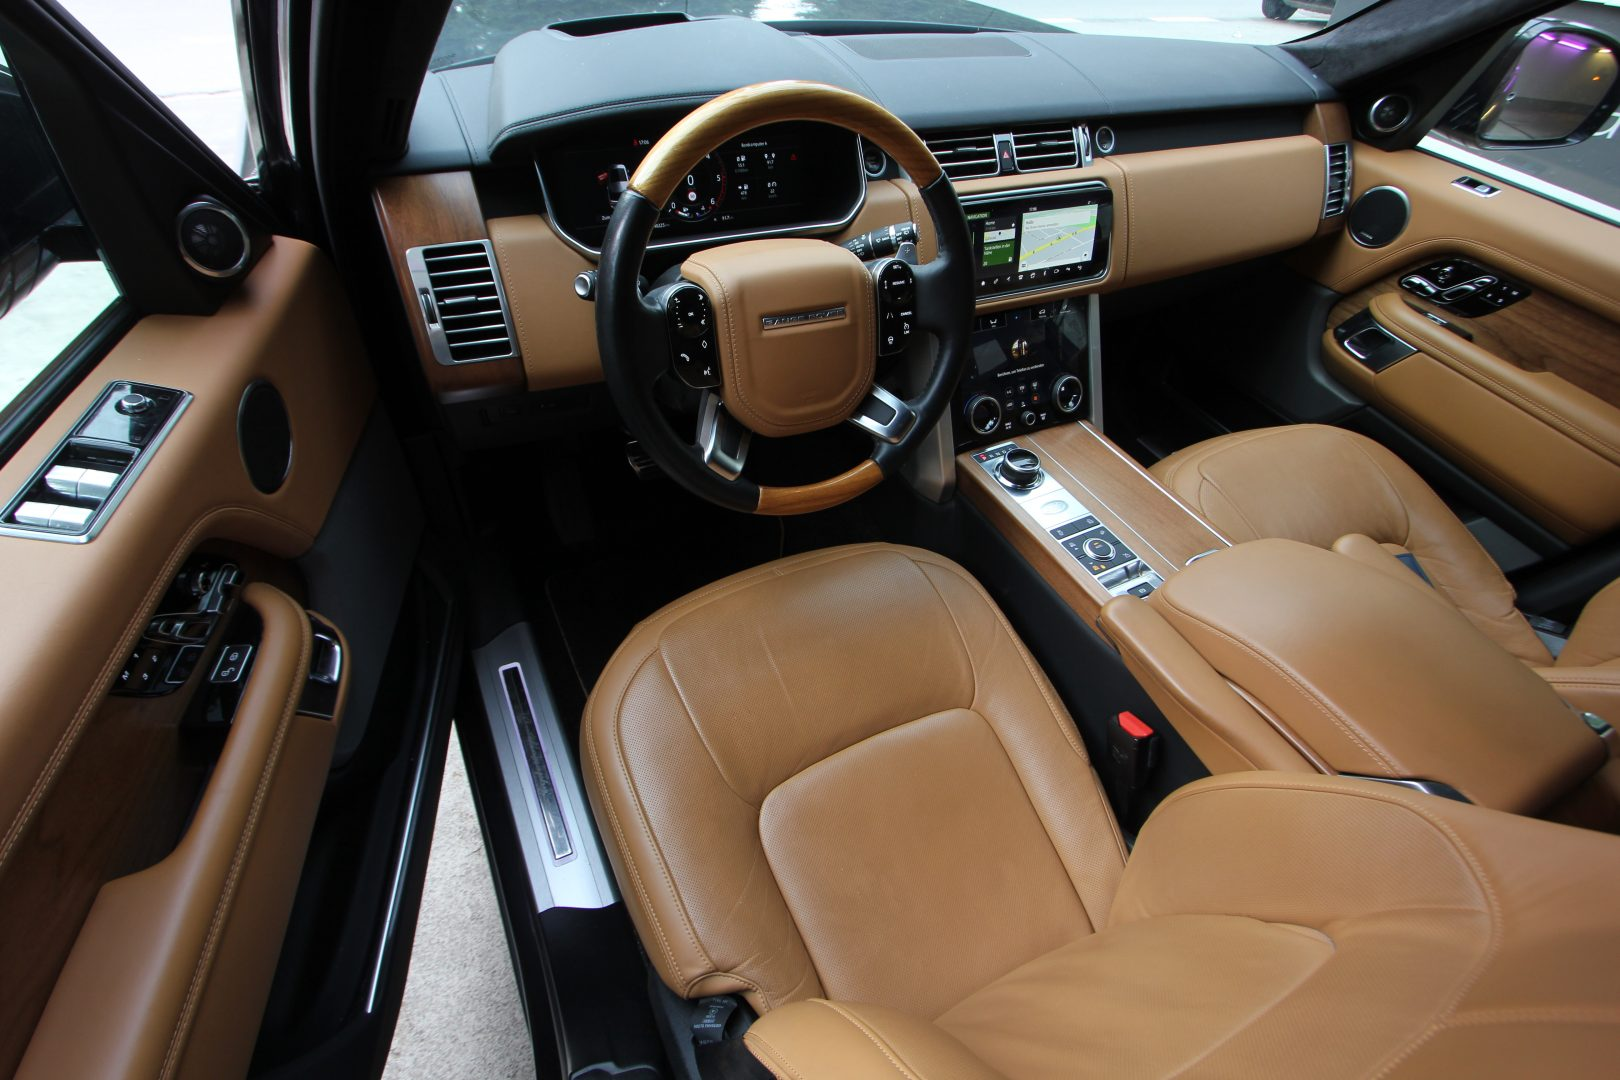 AIL Land Rover Range Rover SDV8 Autobiography 8